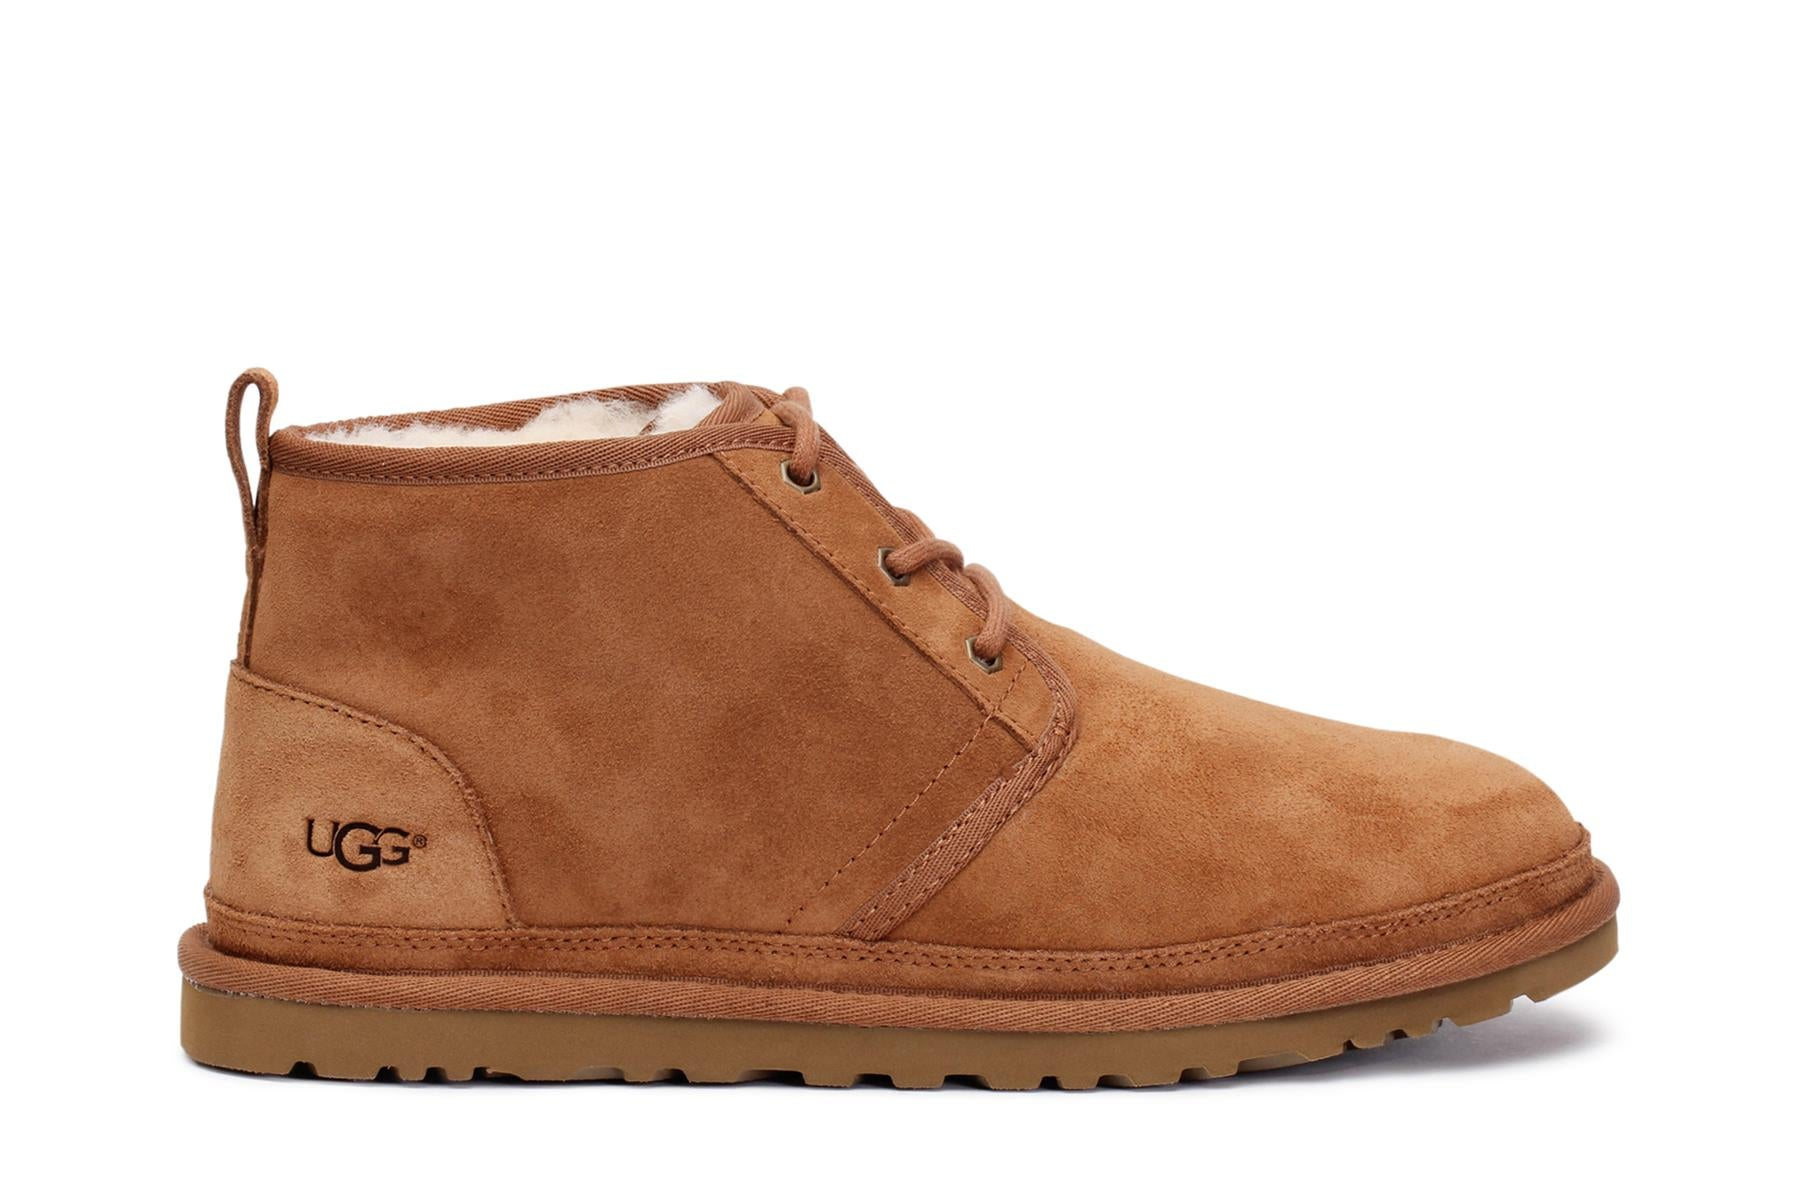 Classic Neumel UGG Boots